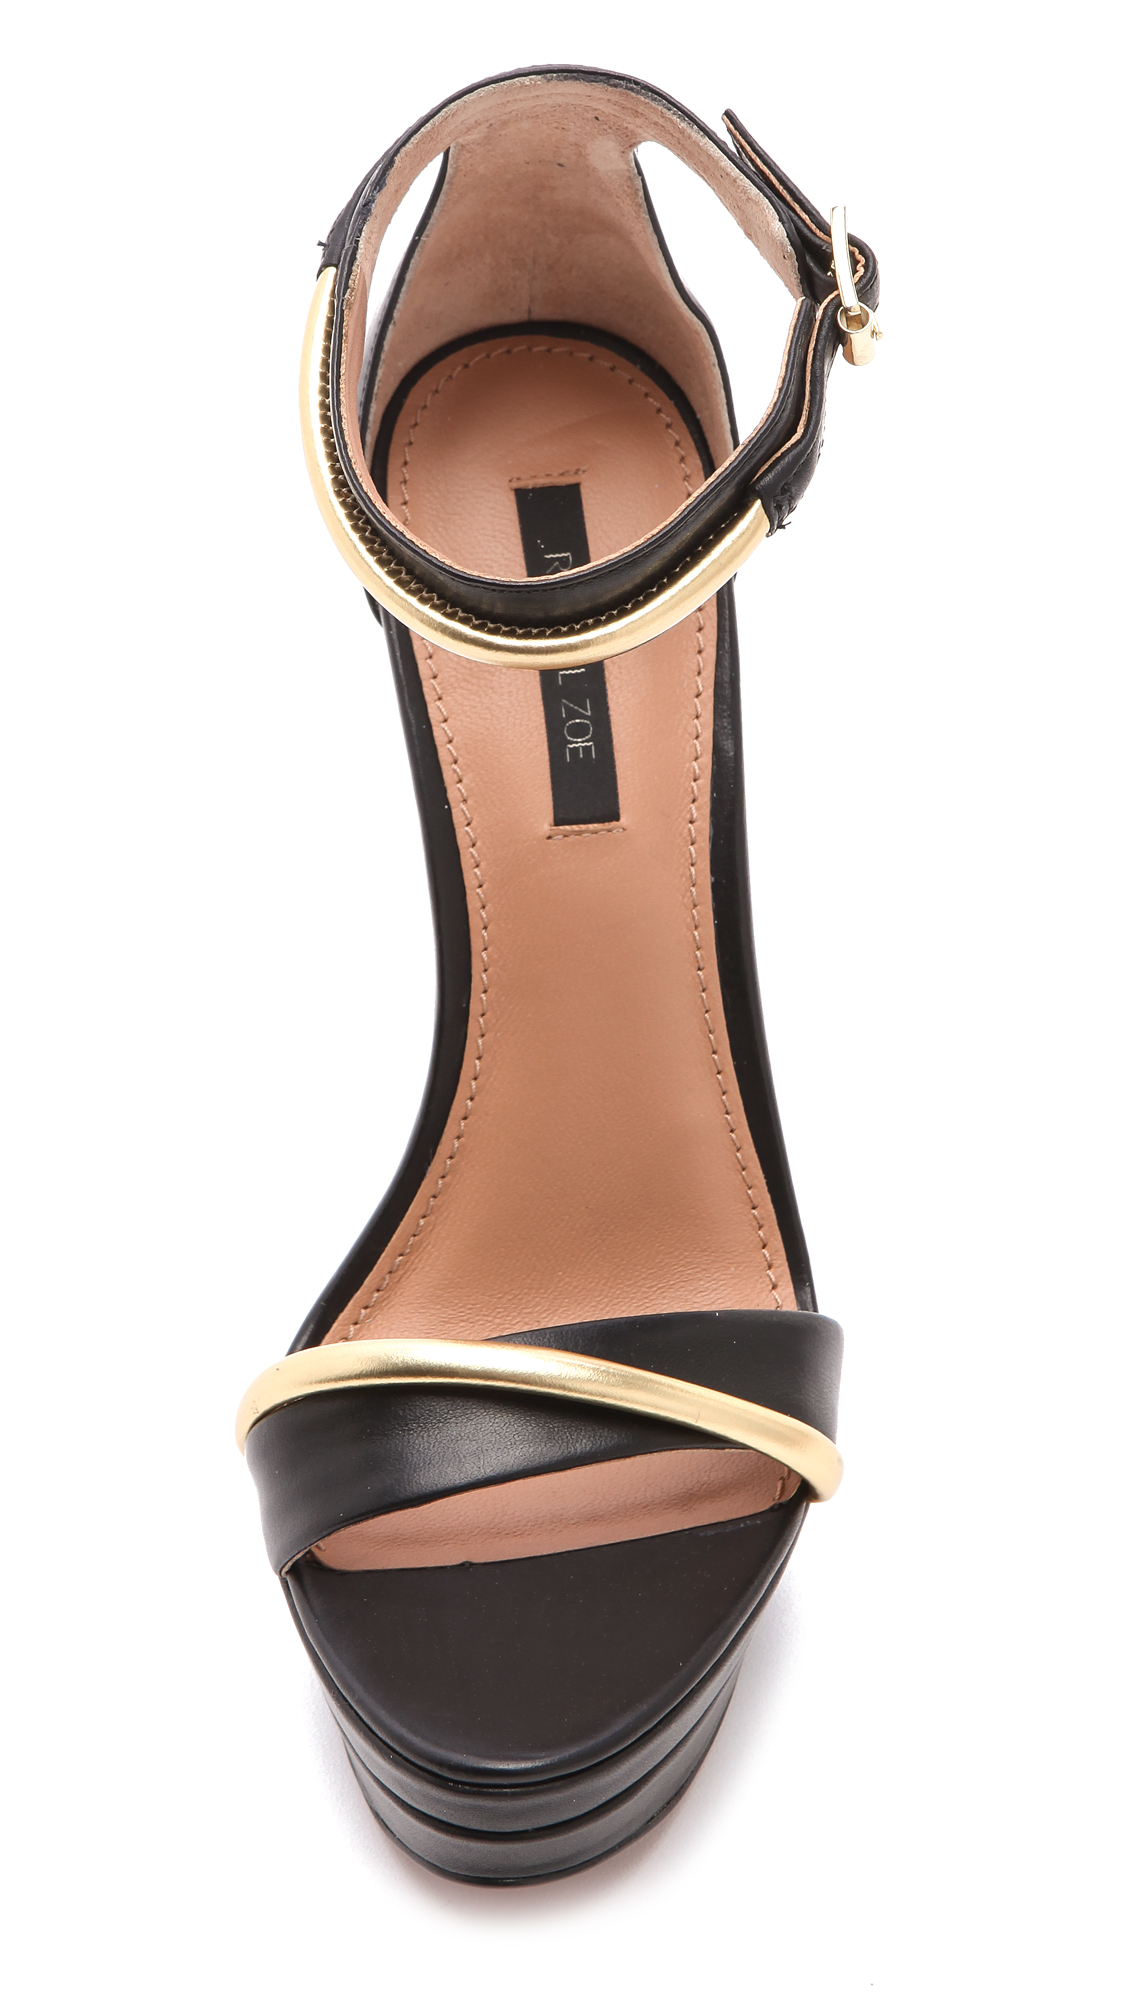 cd1d2f7d3cbb Rachel Zoe Katlyn Wedge Sandals